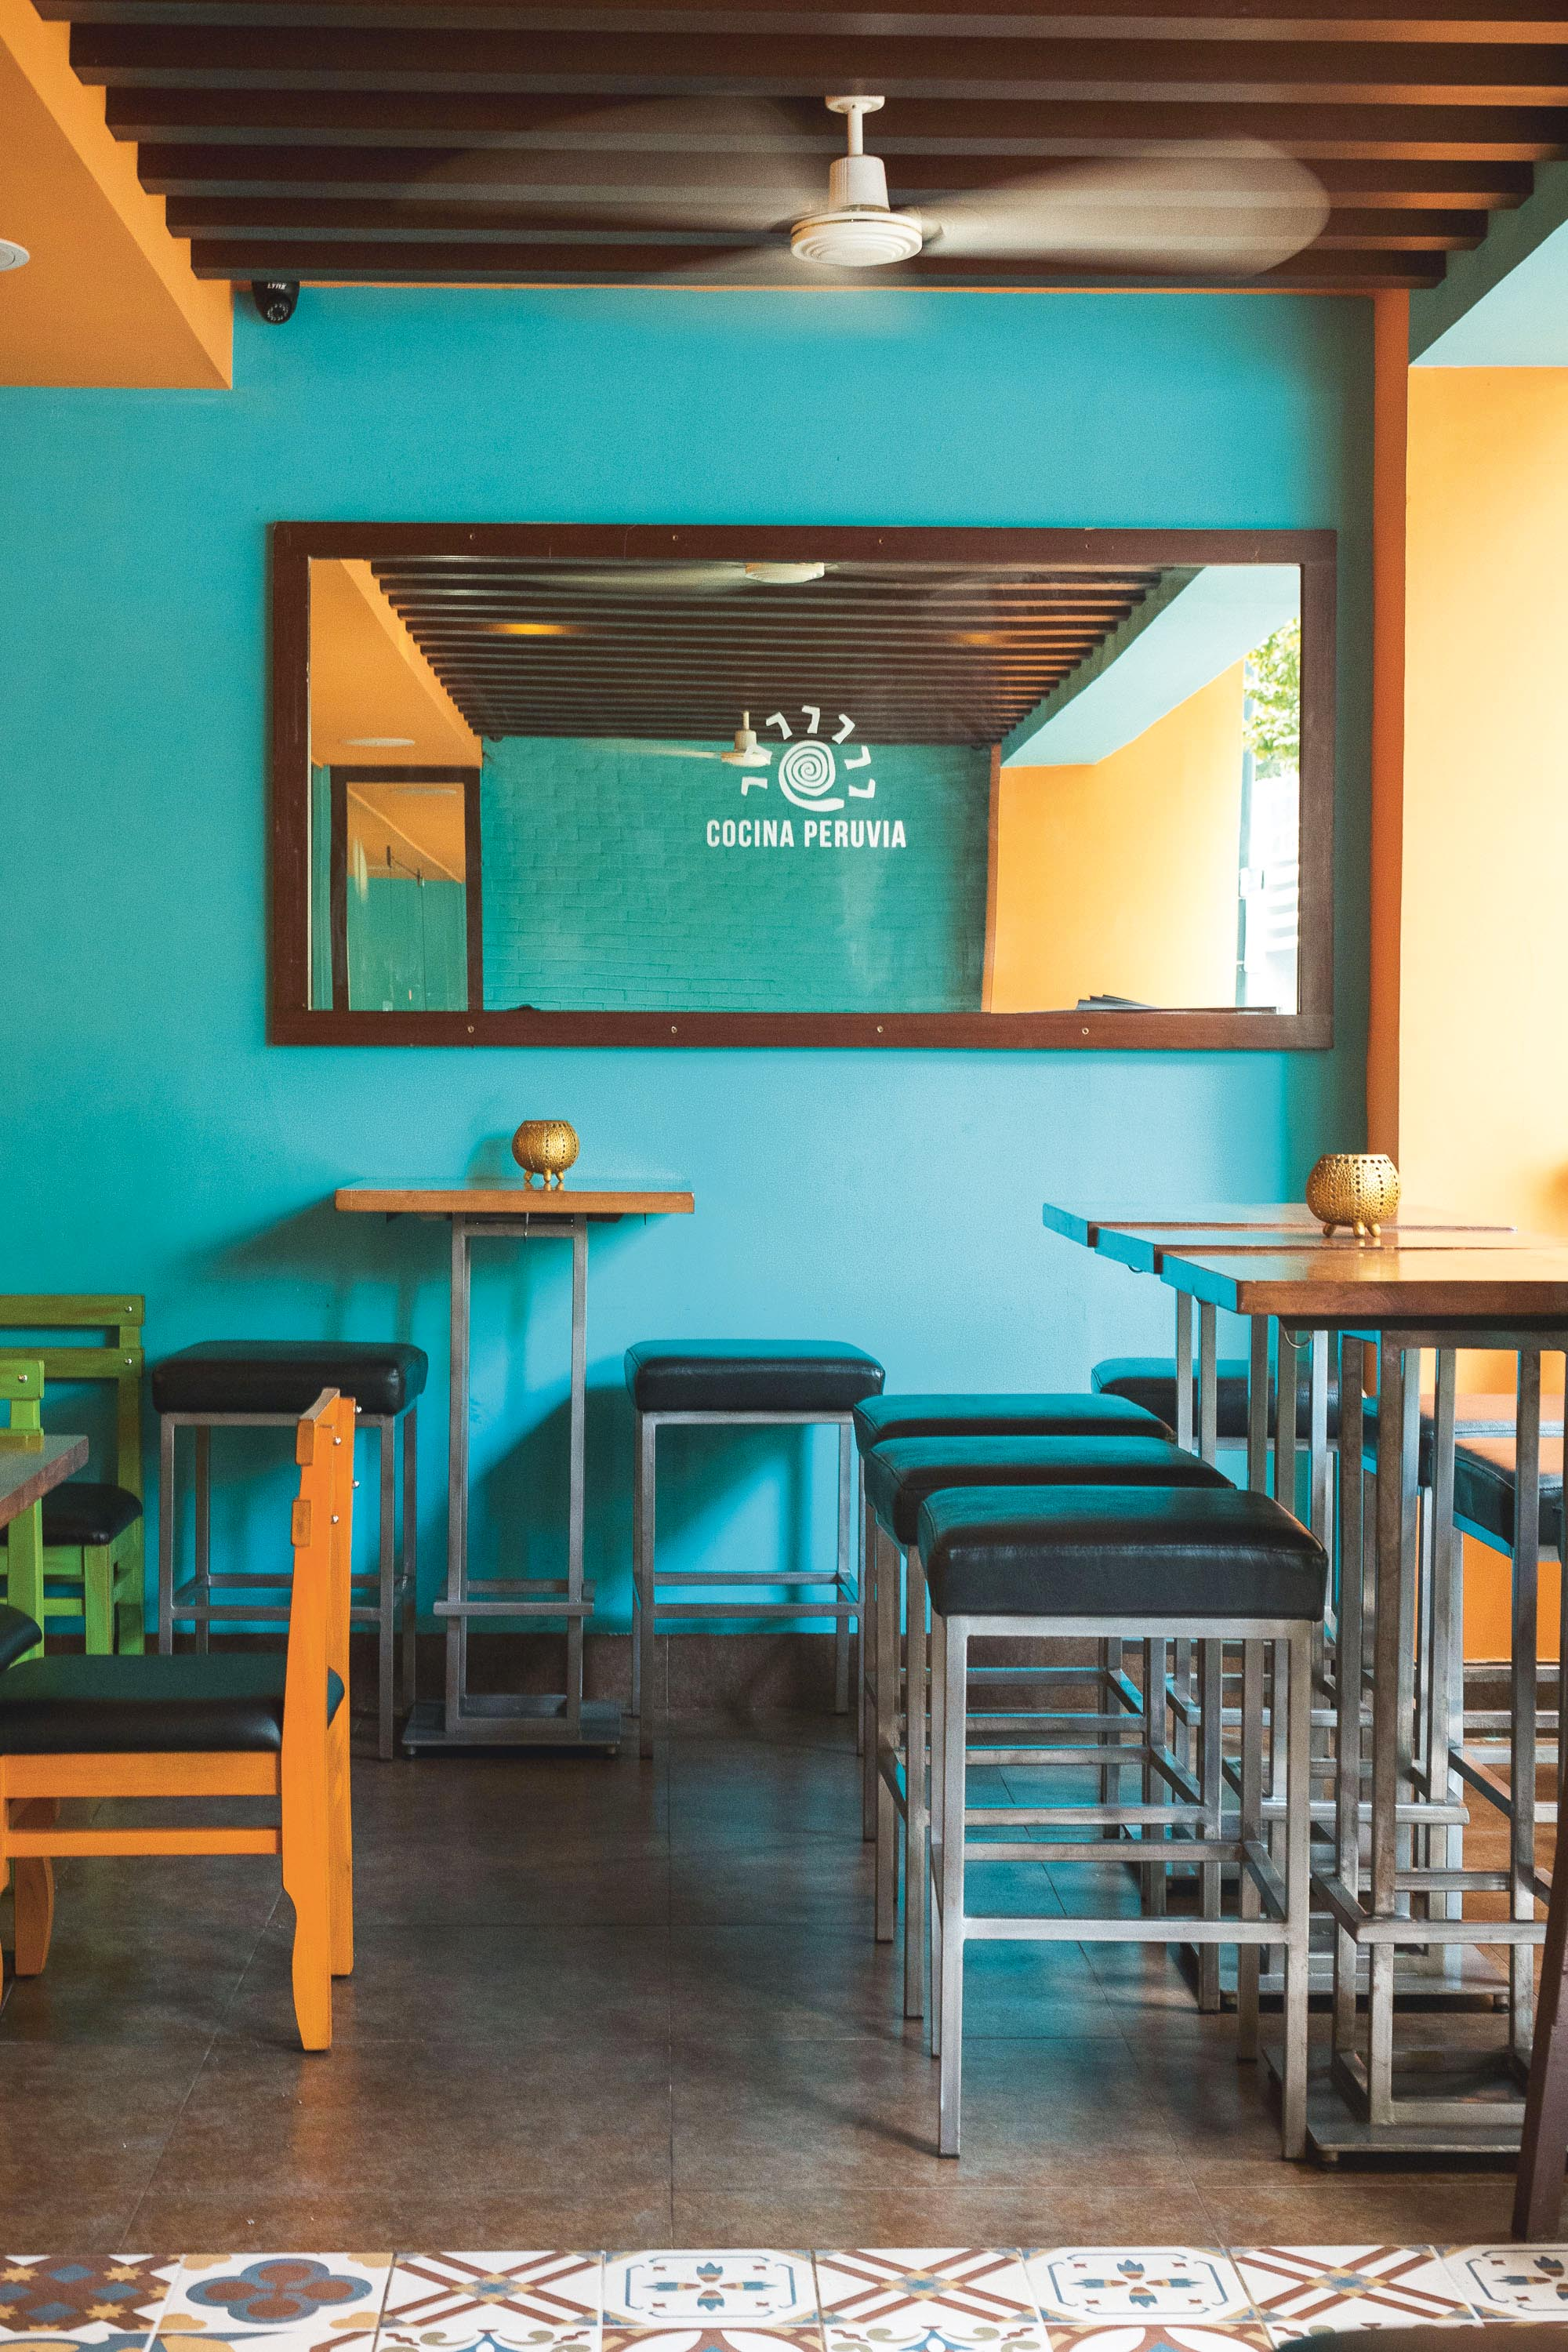 Cocina Peruvia's clean, no-frills interiors are complemented by the space's bright hues.